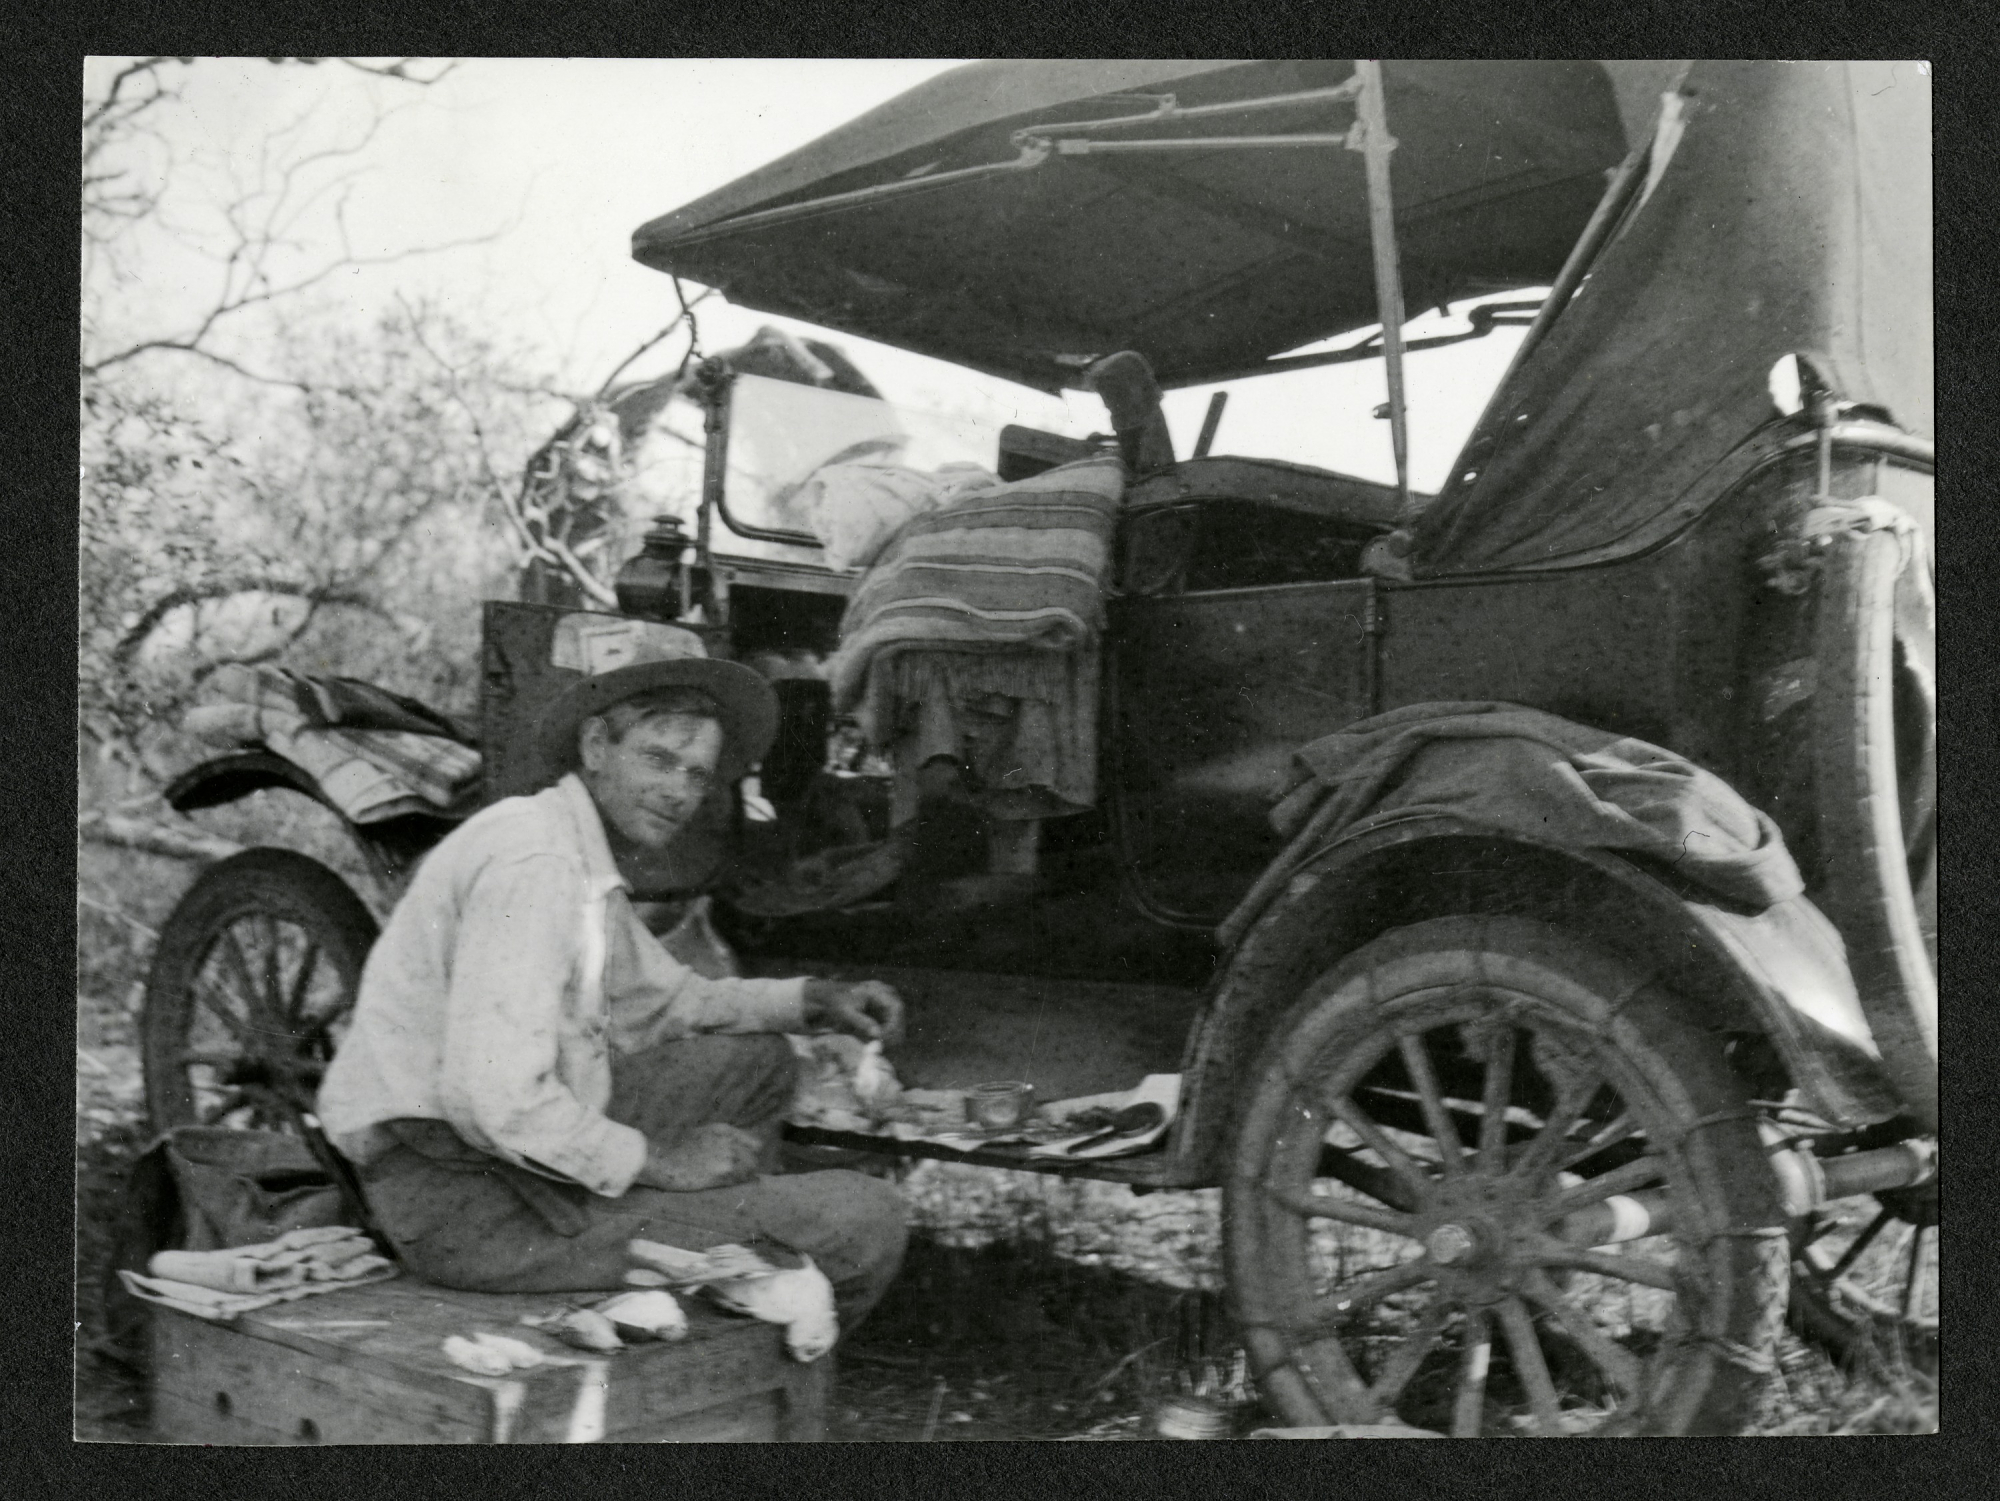 B&W image of B&W image of Alexander Wetmore sitting on a crate next to a automobile.